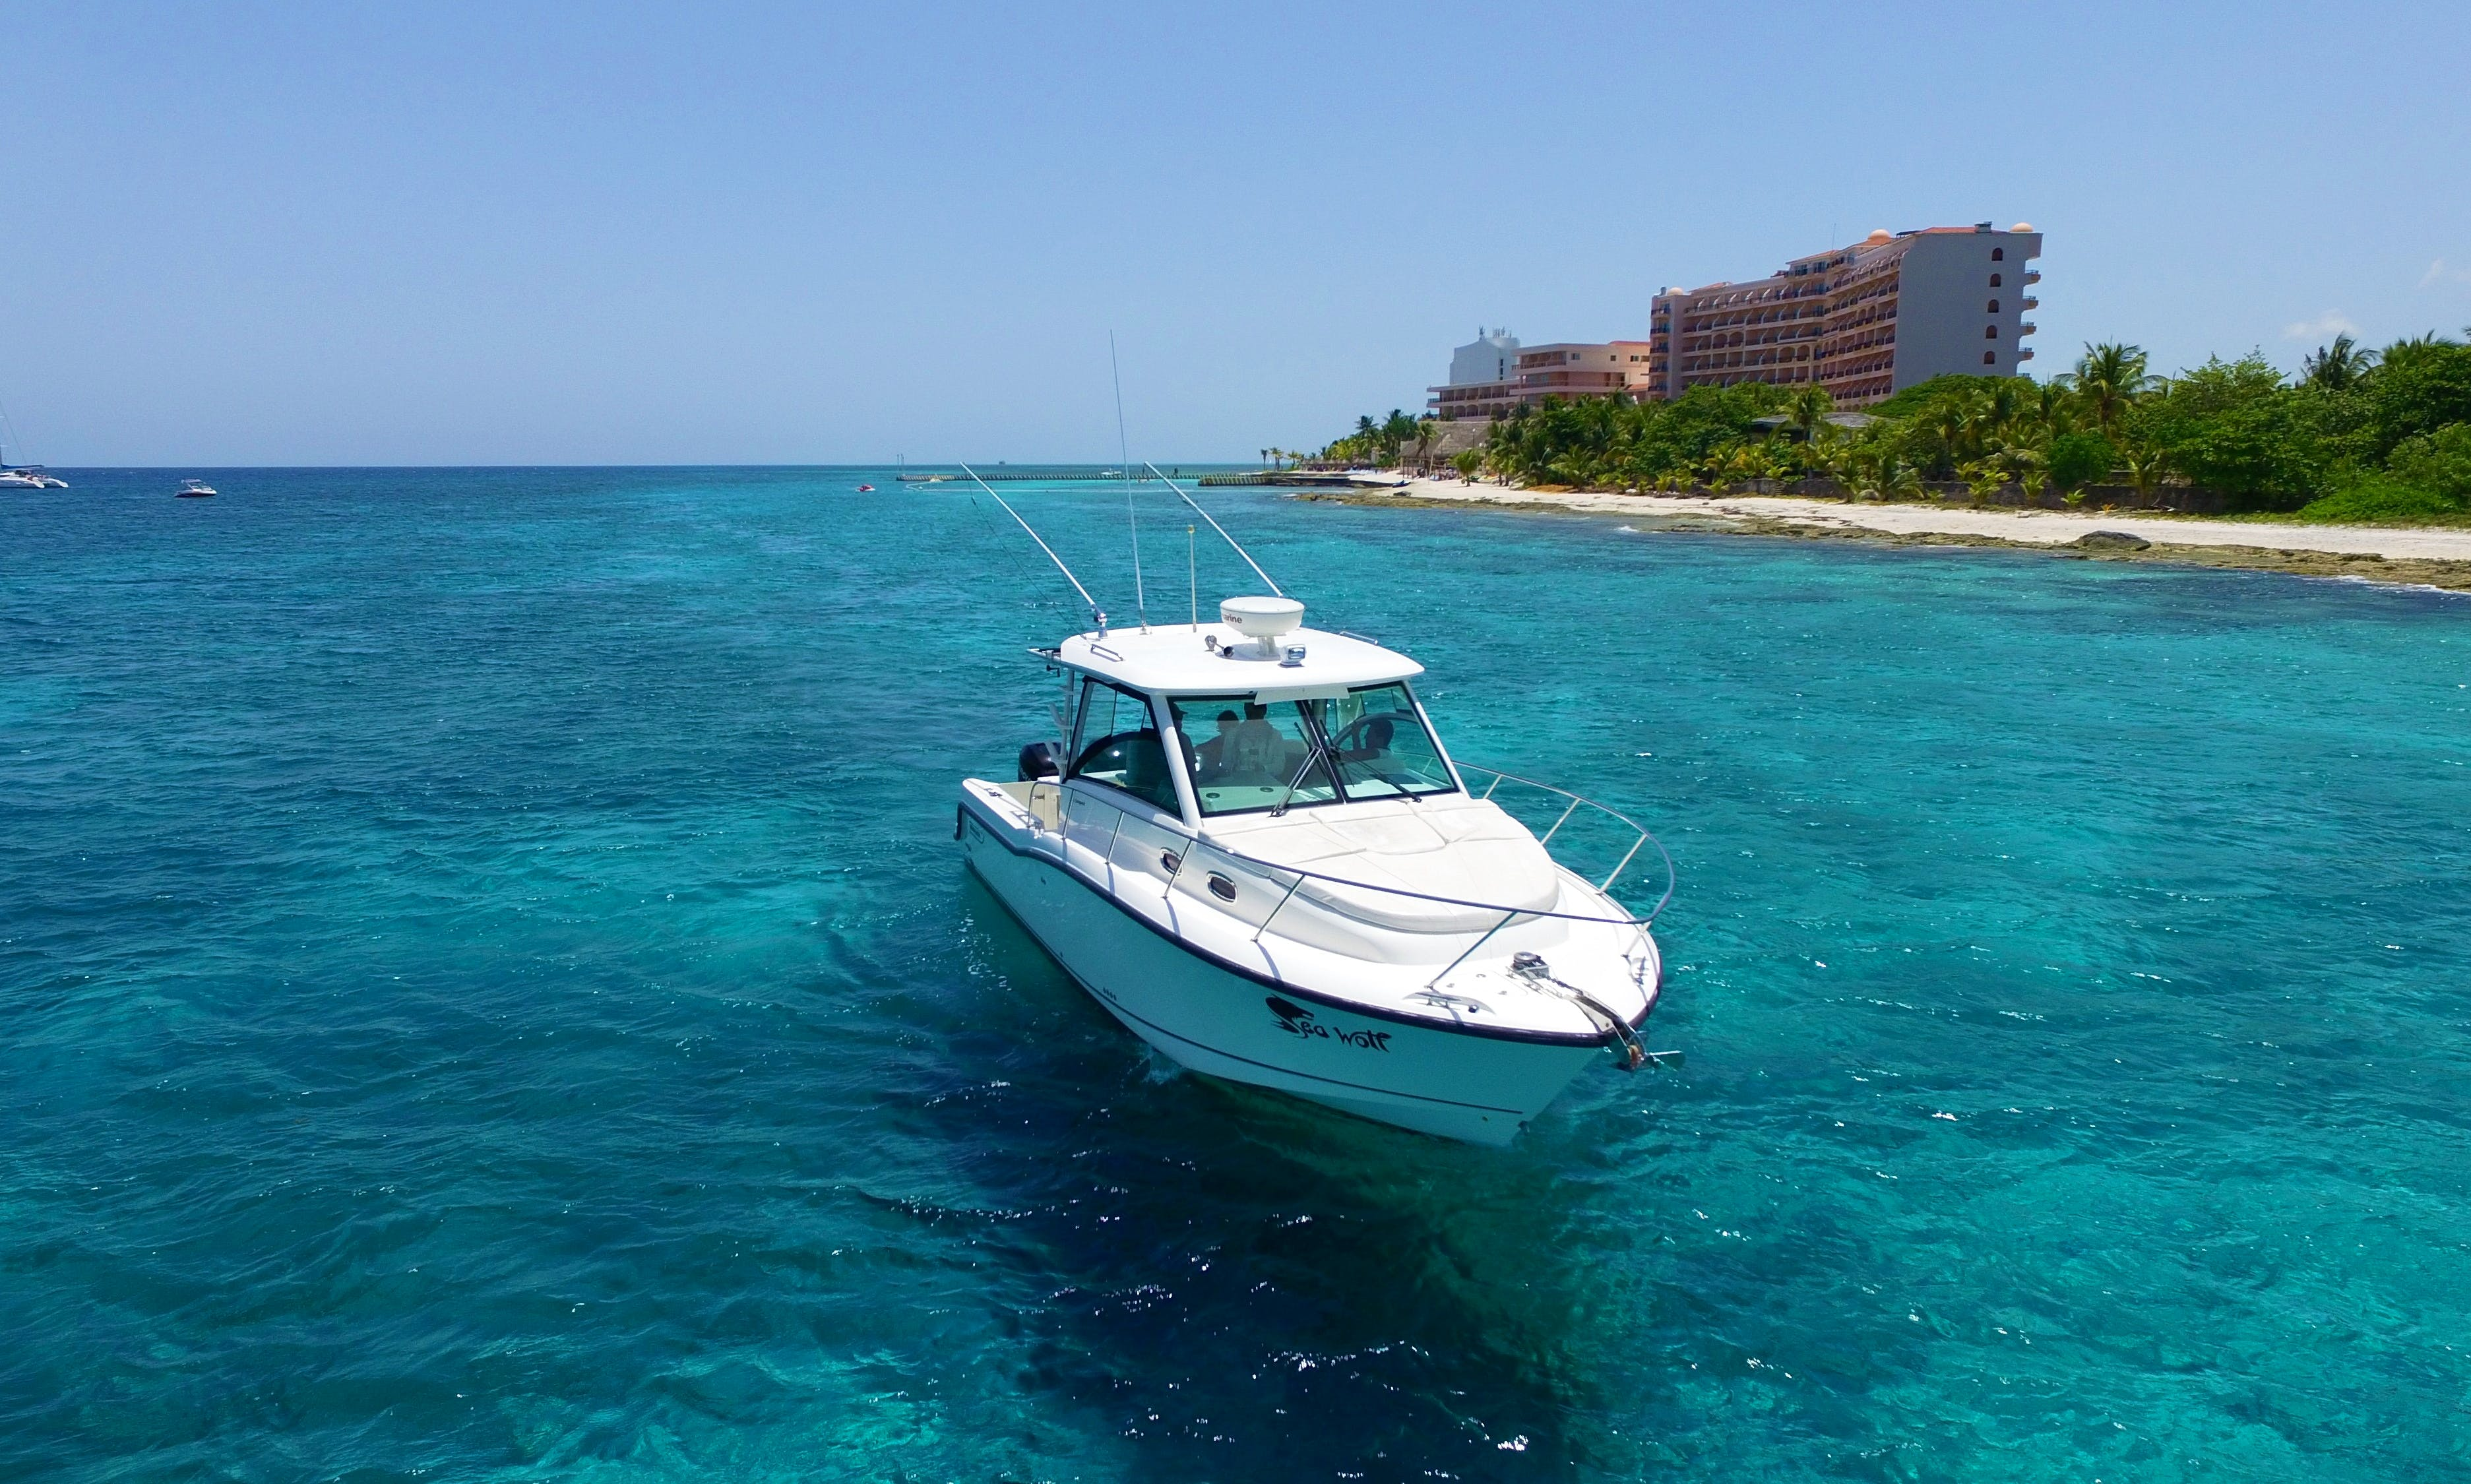 Exclusive Boat Tour in El Cielo, Cozumel Island onboard 33' Boston Whaler for 8 passengers